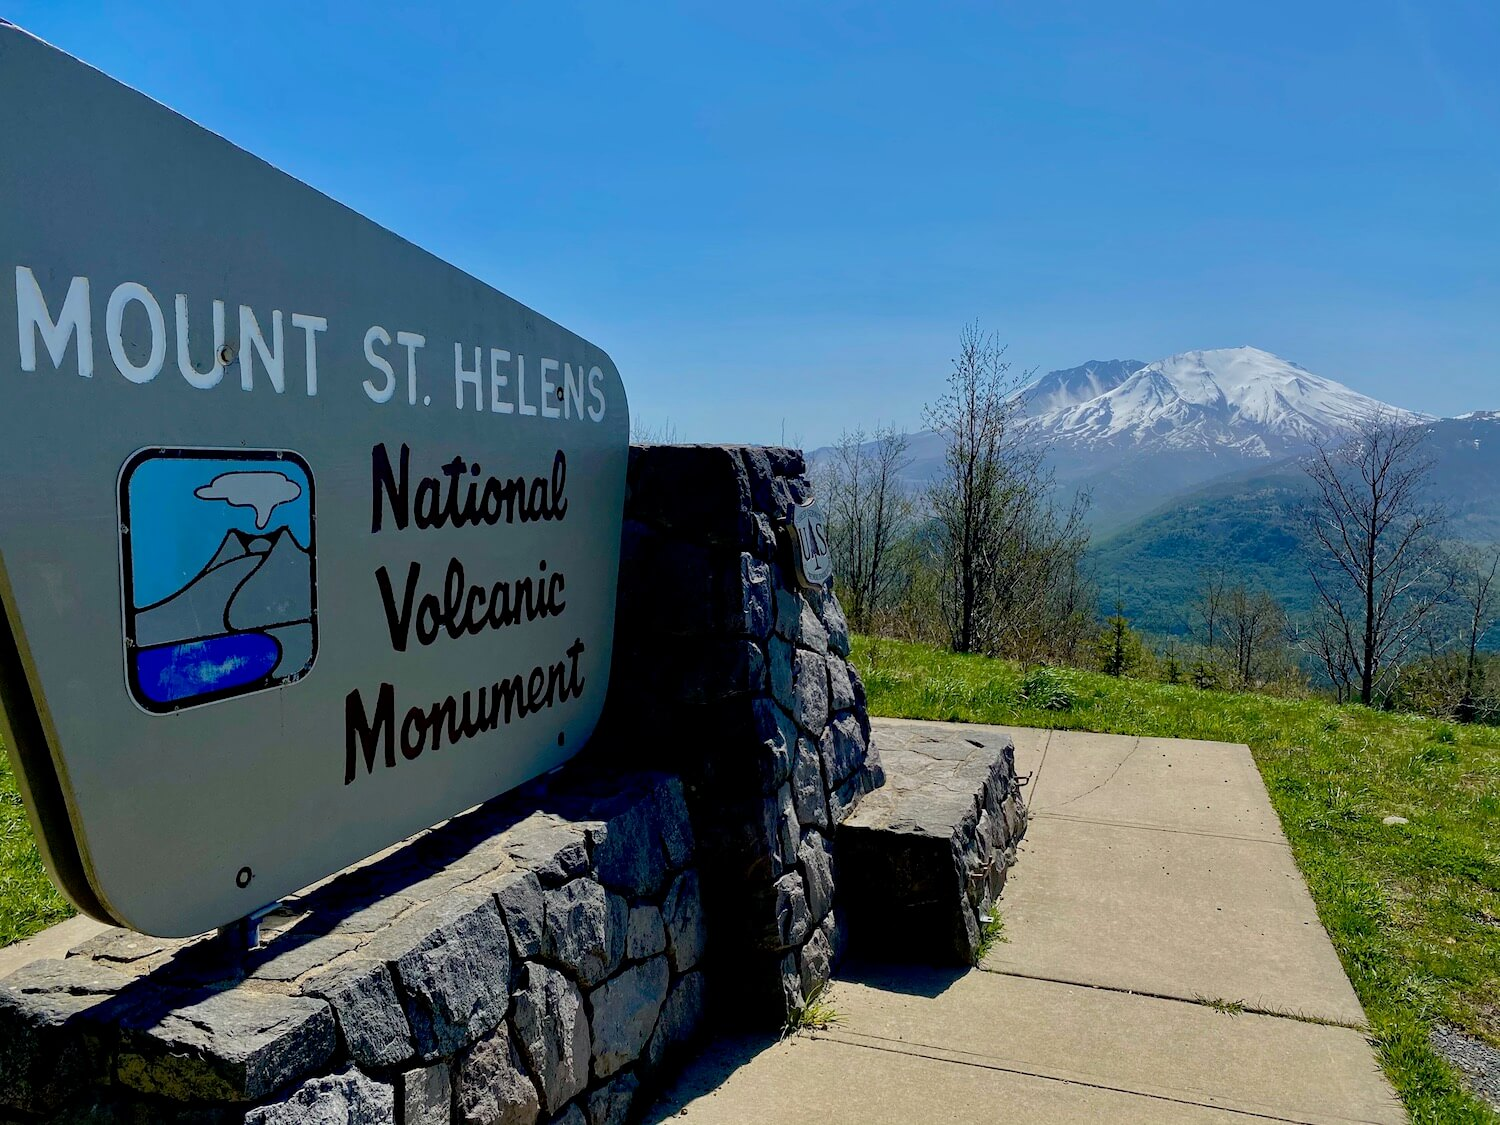 The entrance sign to the Mount St. Helens National Volcanic Monument. The sign is housed on a rock wall and sits on the side of a steep hill facing the snow covered volcano in the distance. The grass near the sign is bright green with the blue sky.